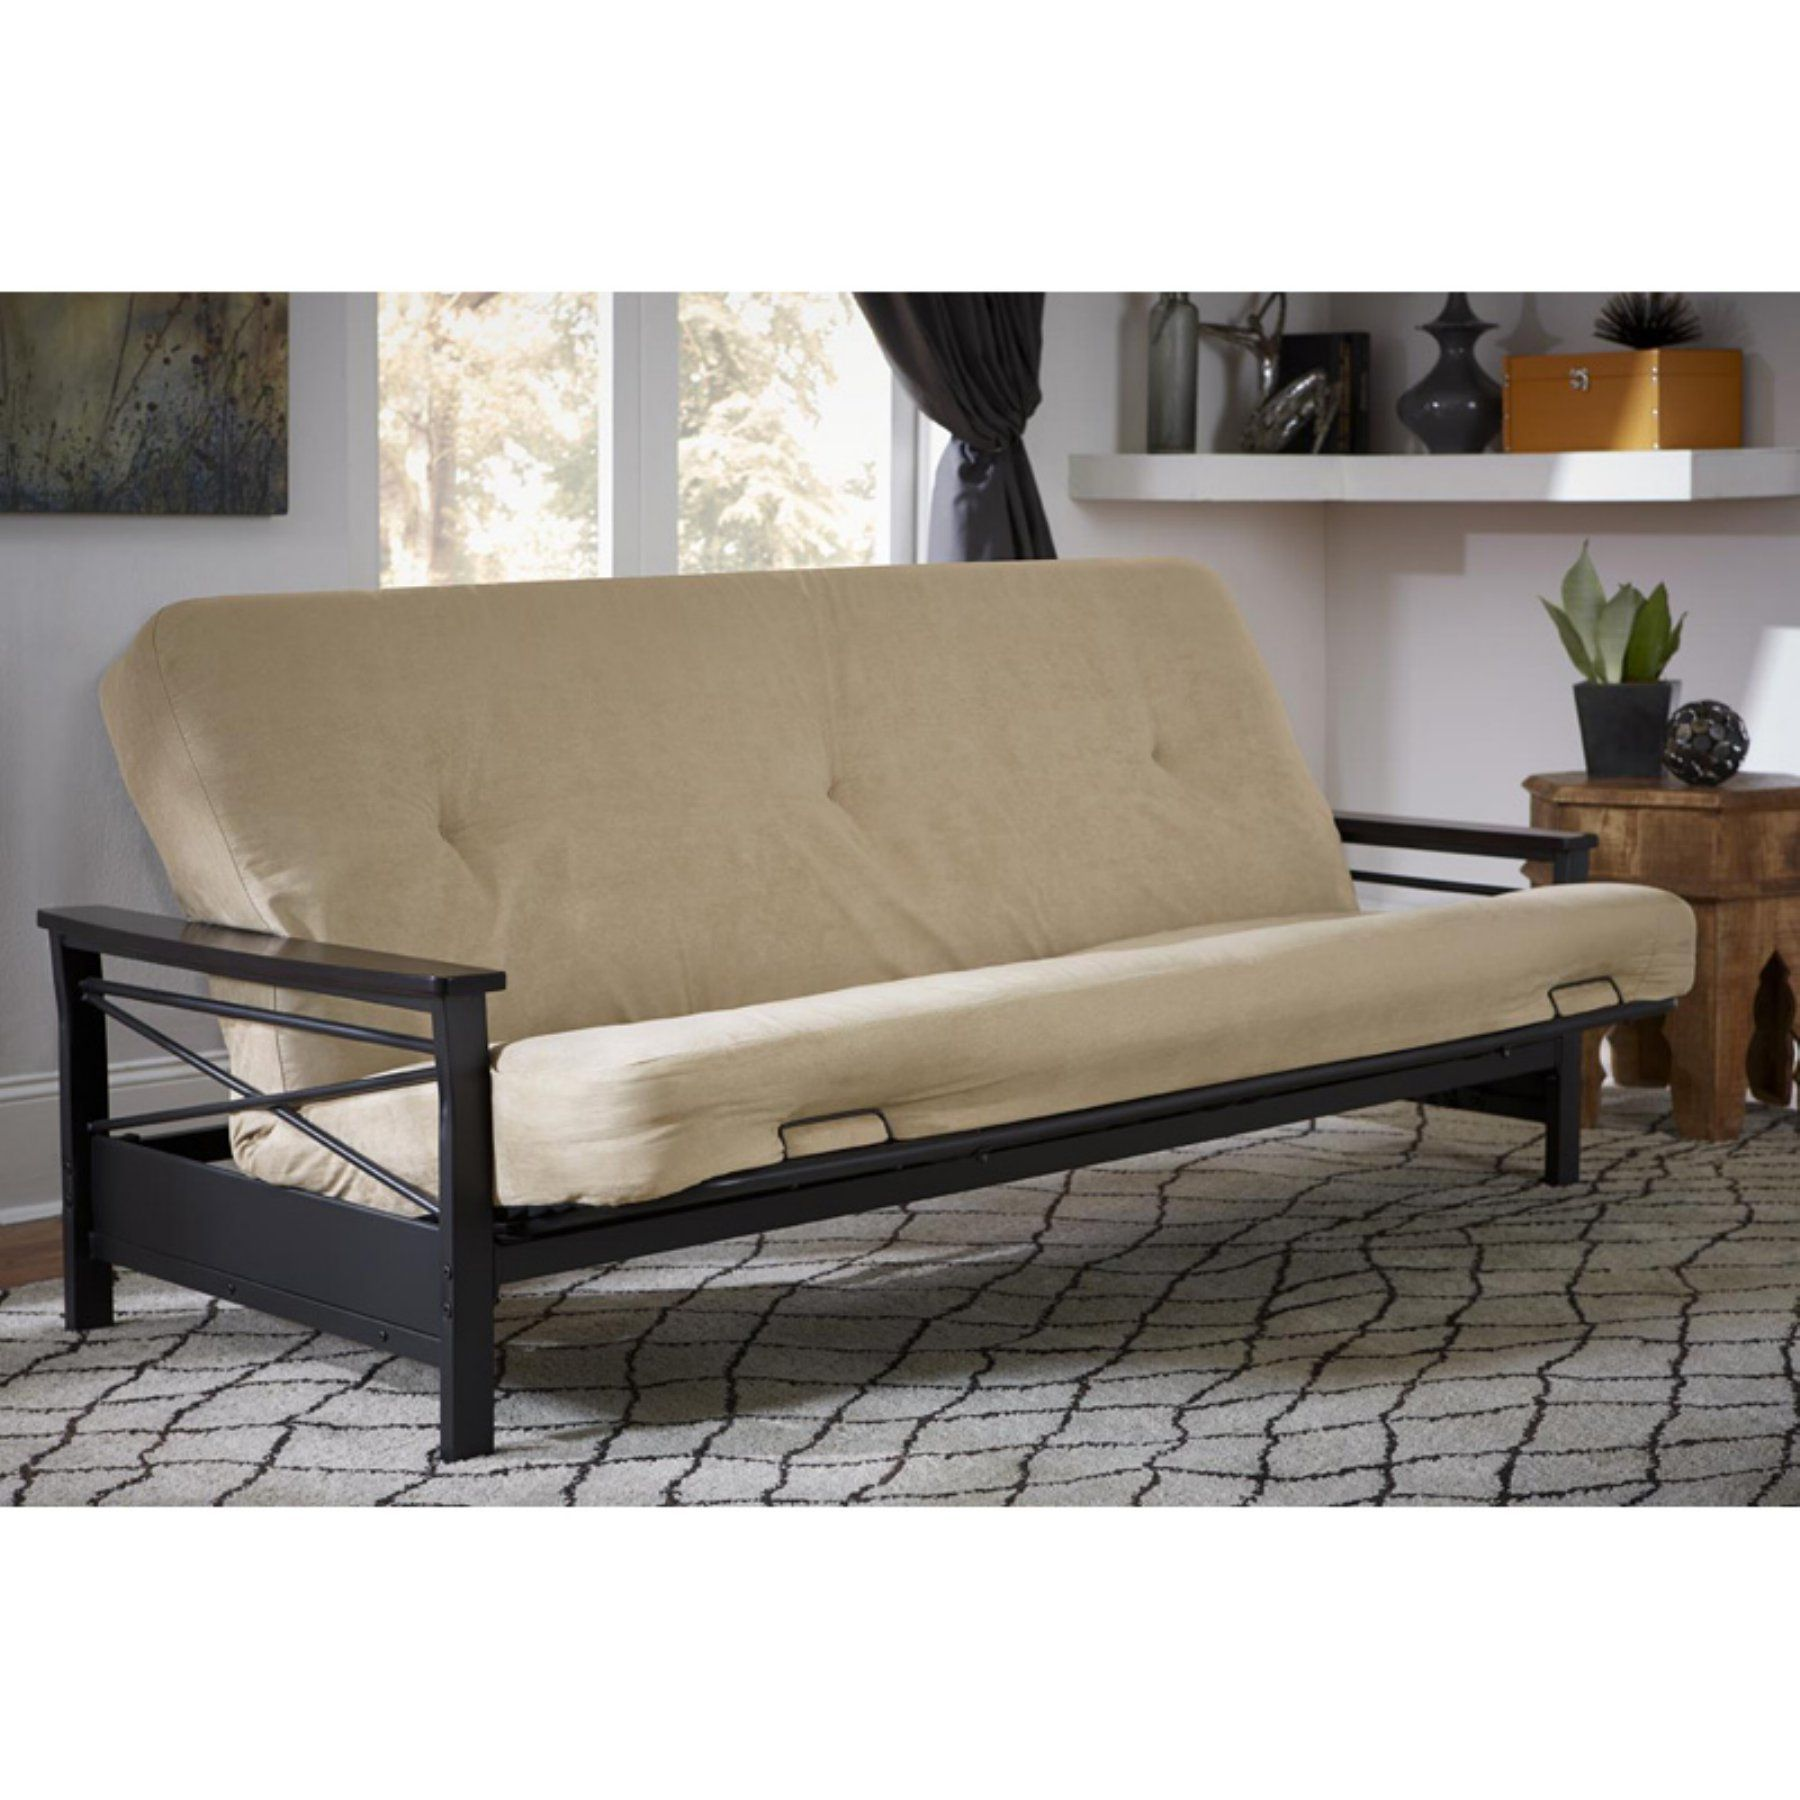 DHP 6 in. Coil Futon Mattress with CertiPUR-US Certified Foam ...